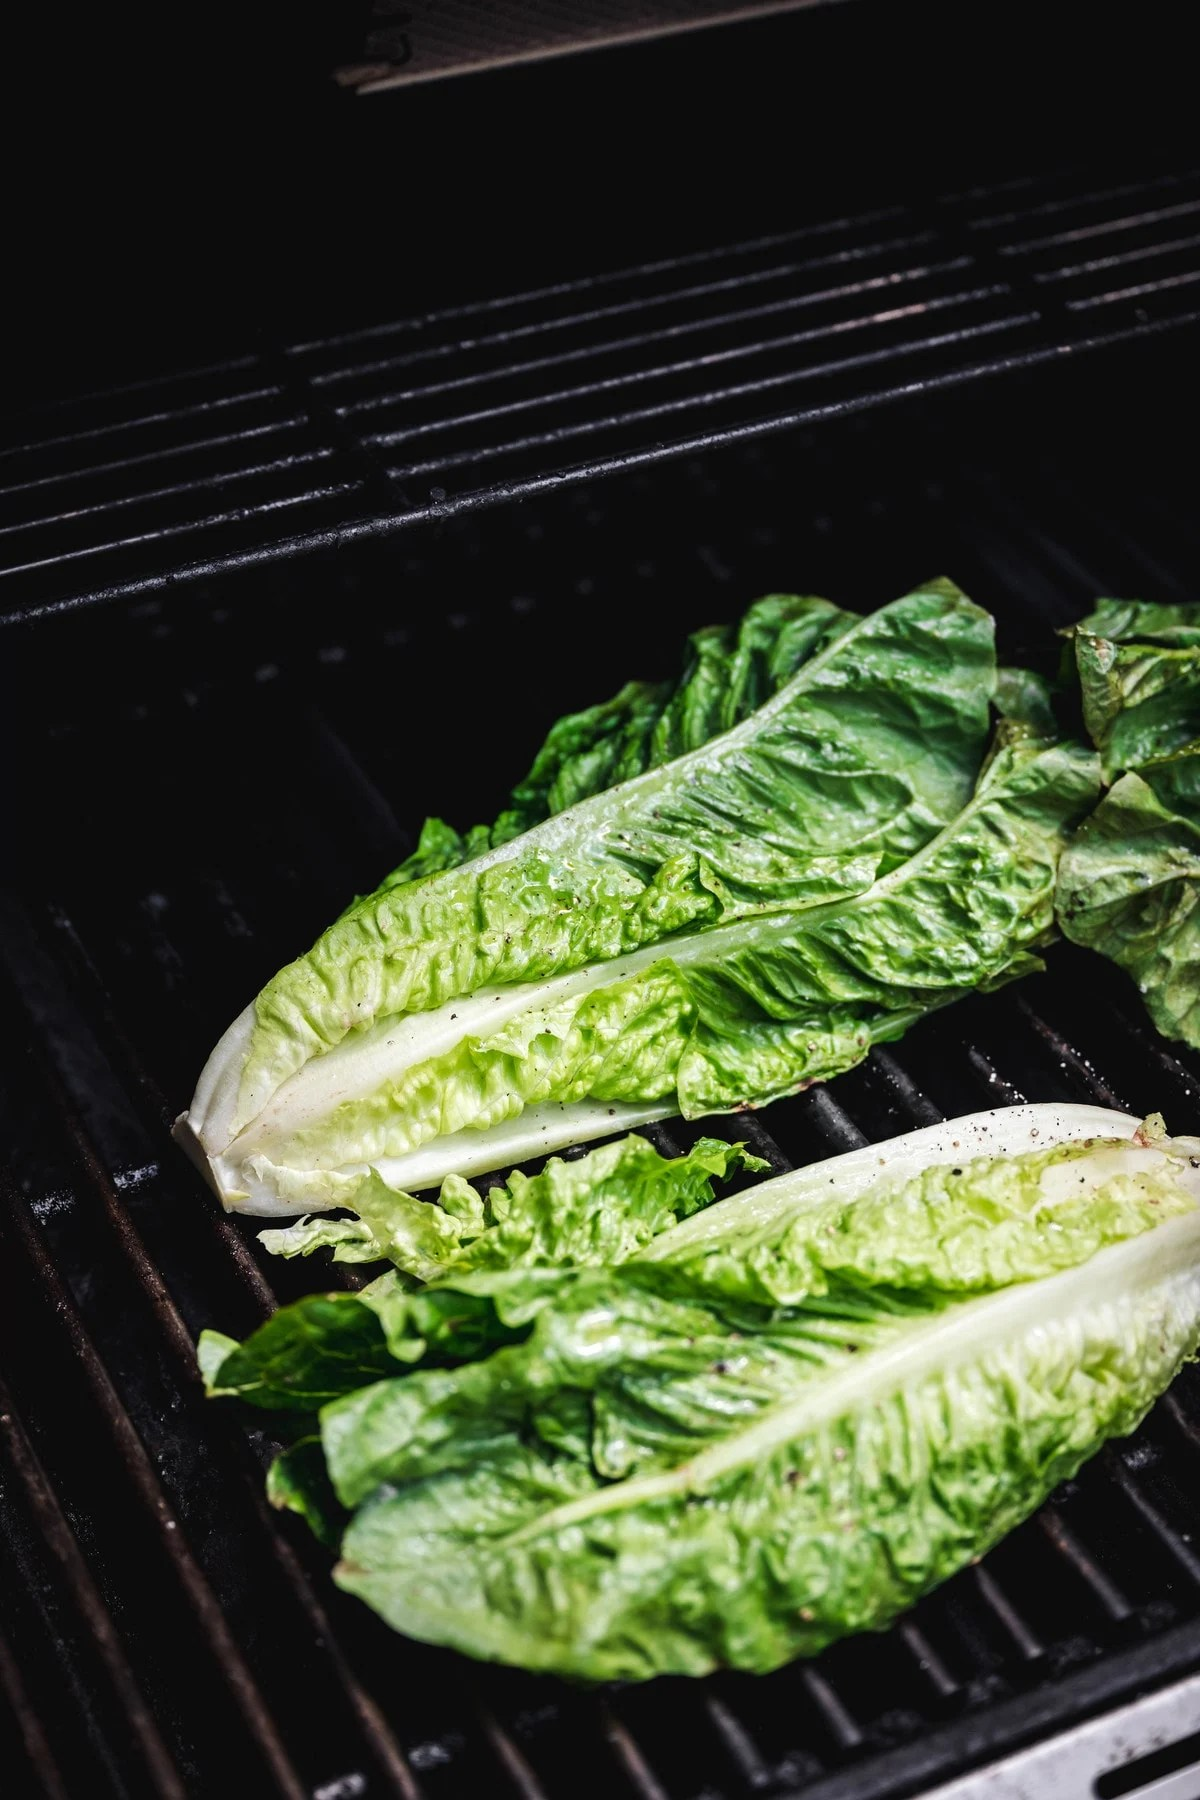 Two halves of a head of romaine lettuce on an open grill